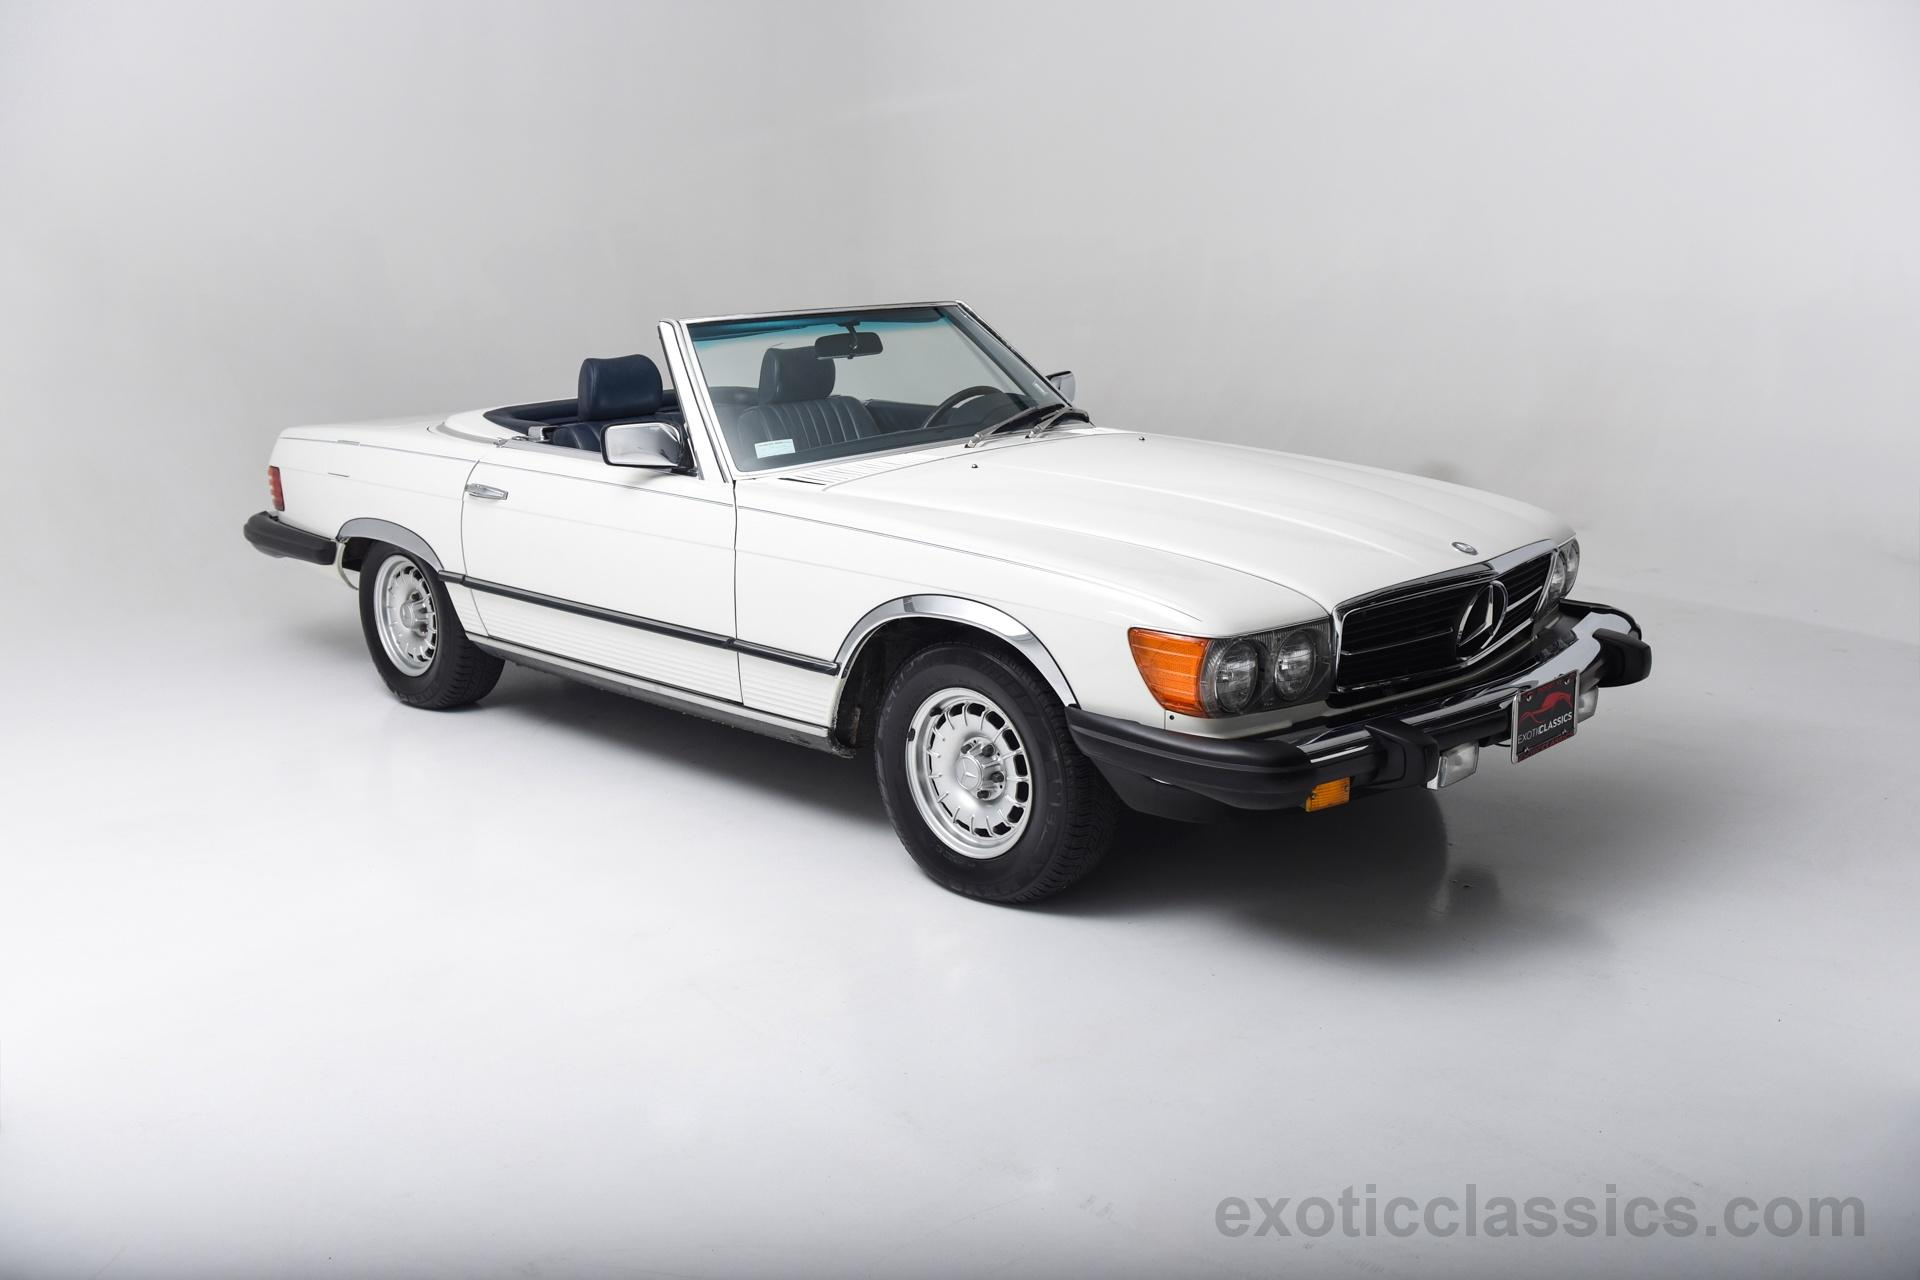 1984 mercedes benz 380 sl 380sl champion motors international l exotic classic car dealership. Black Bedroom Furniture Sets. Home Design Ideas